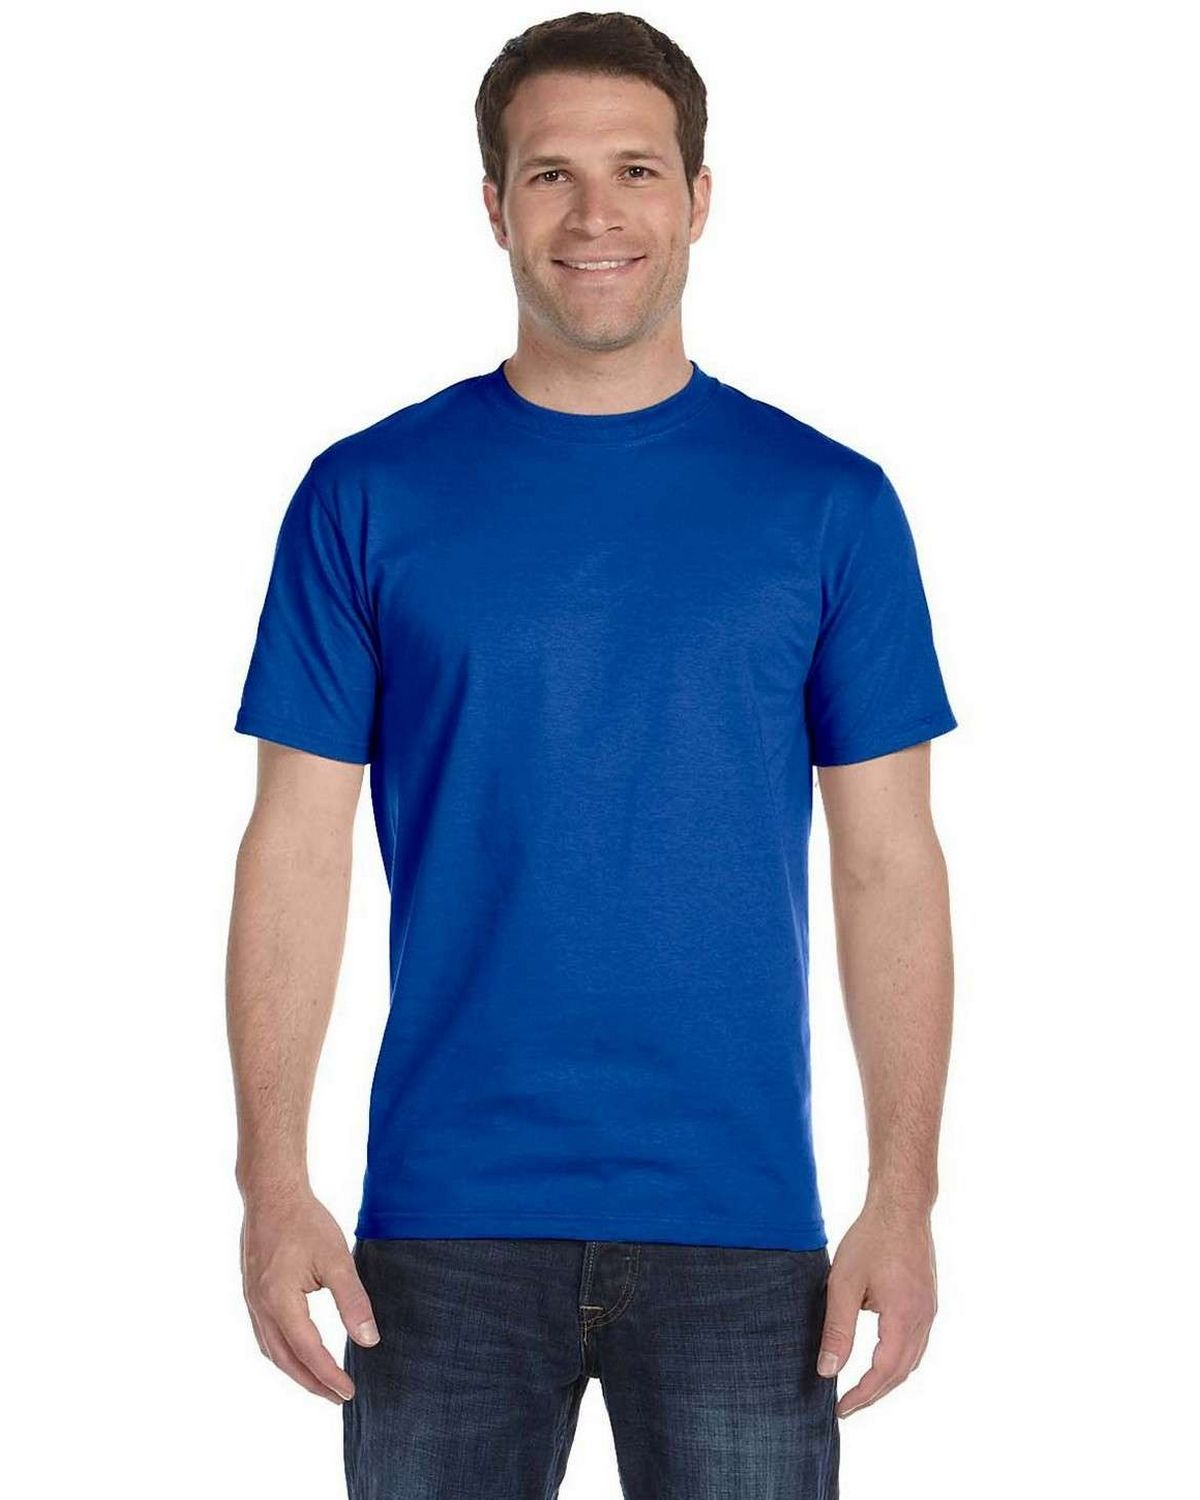 Gildan G8000 Adult Tee - Royal - XL G8000